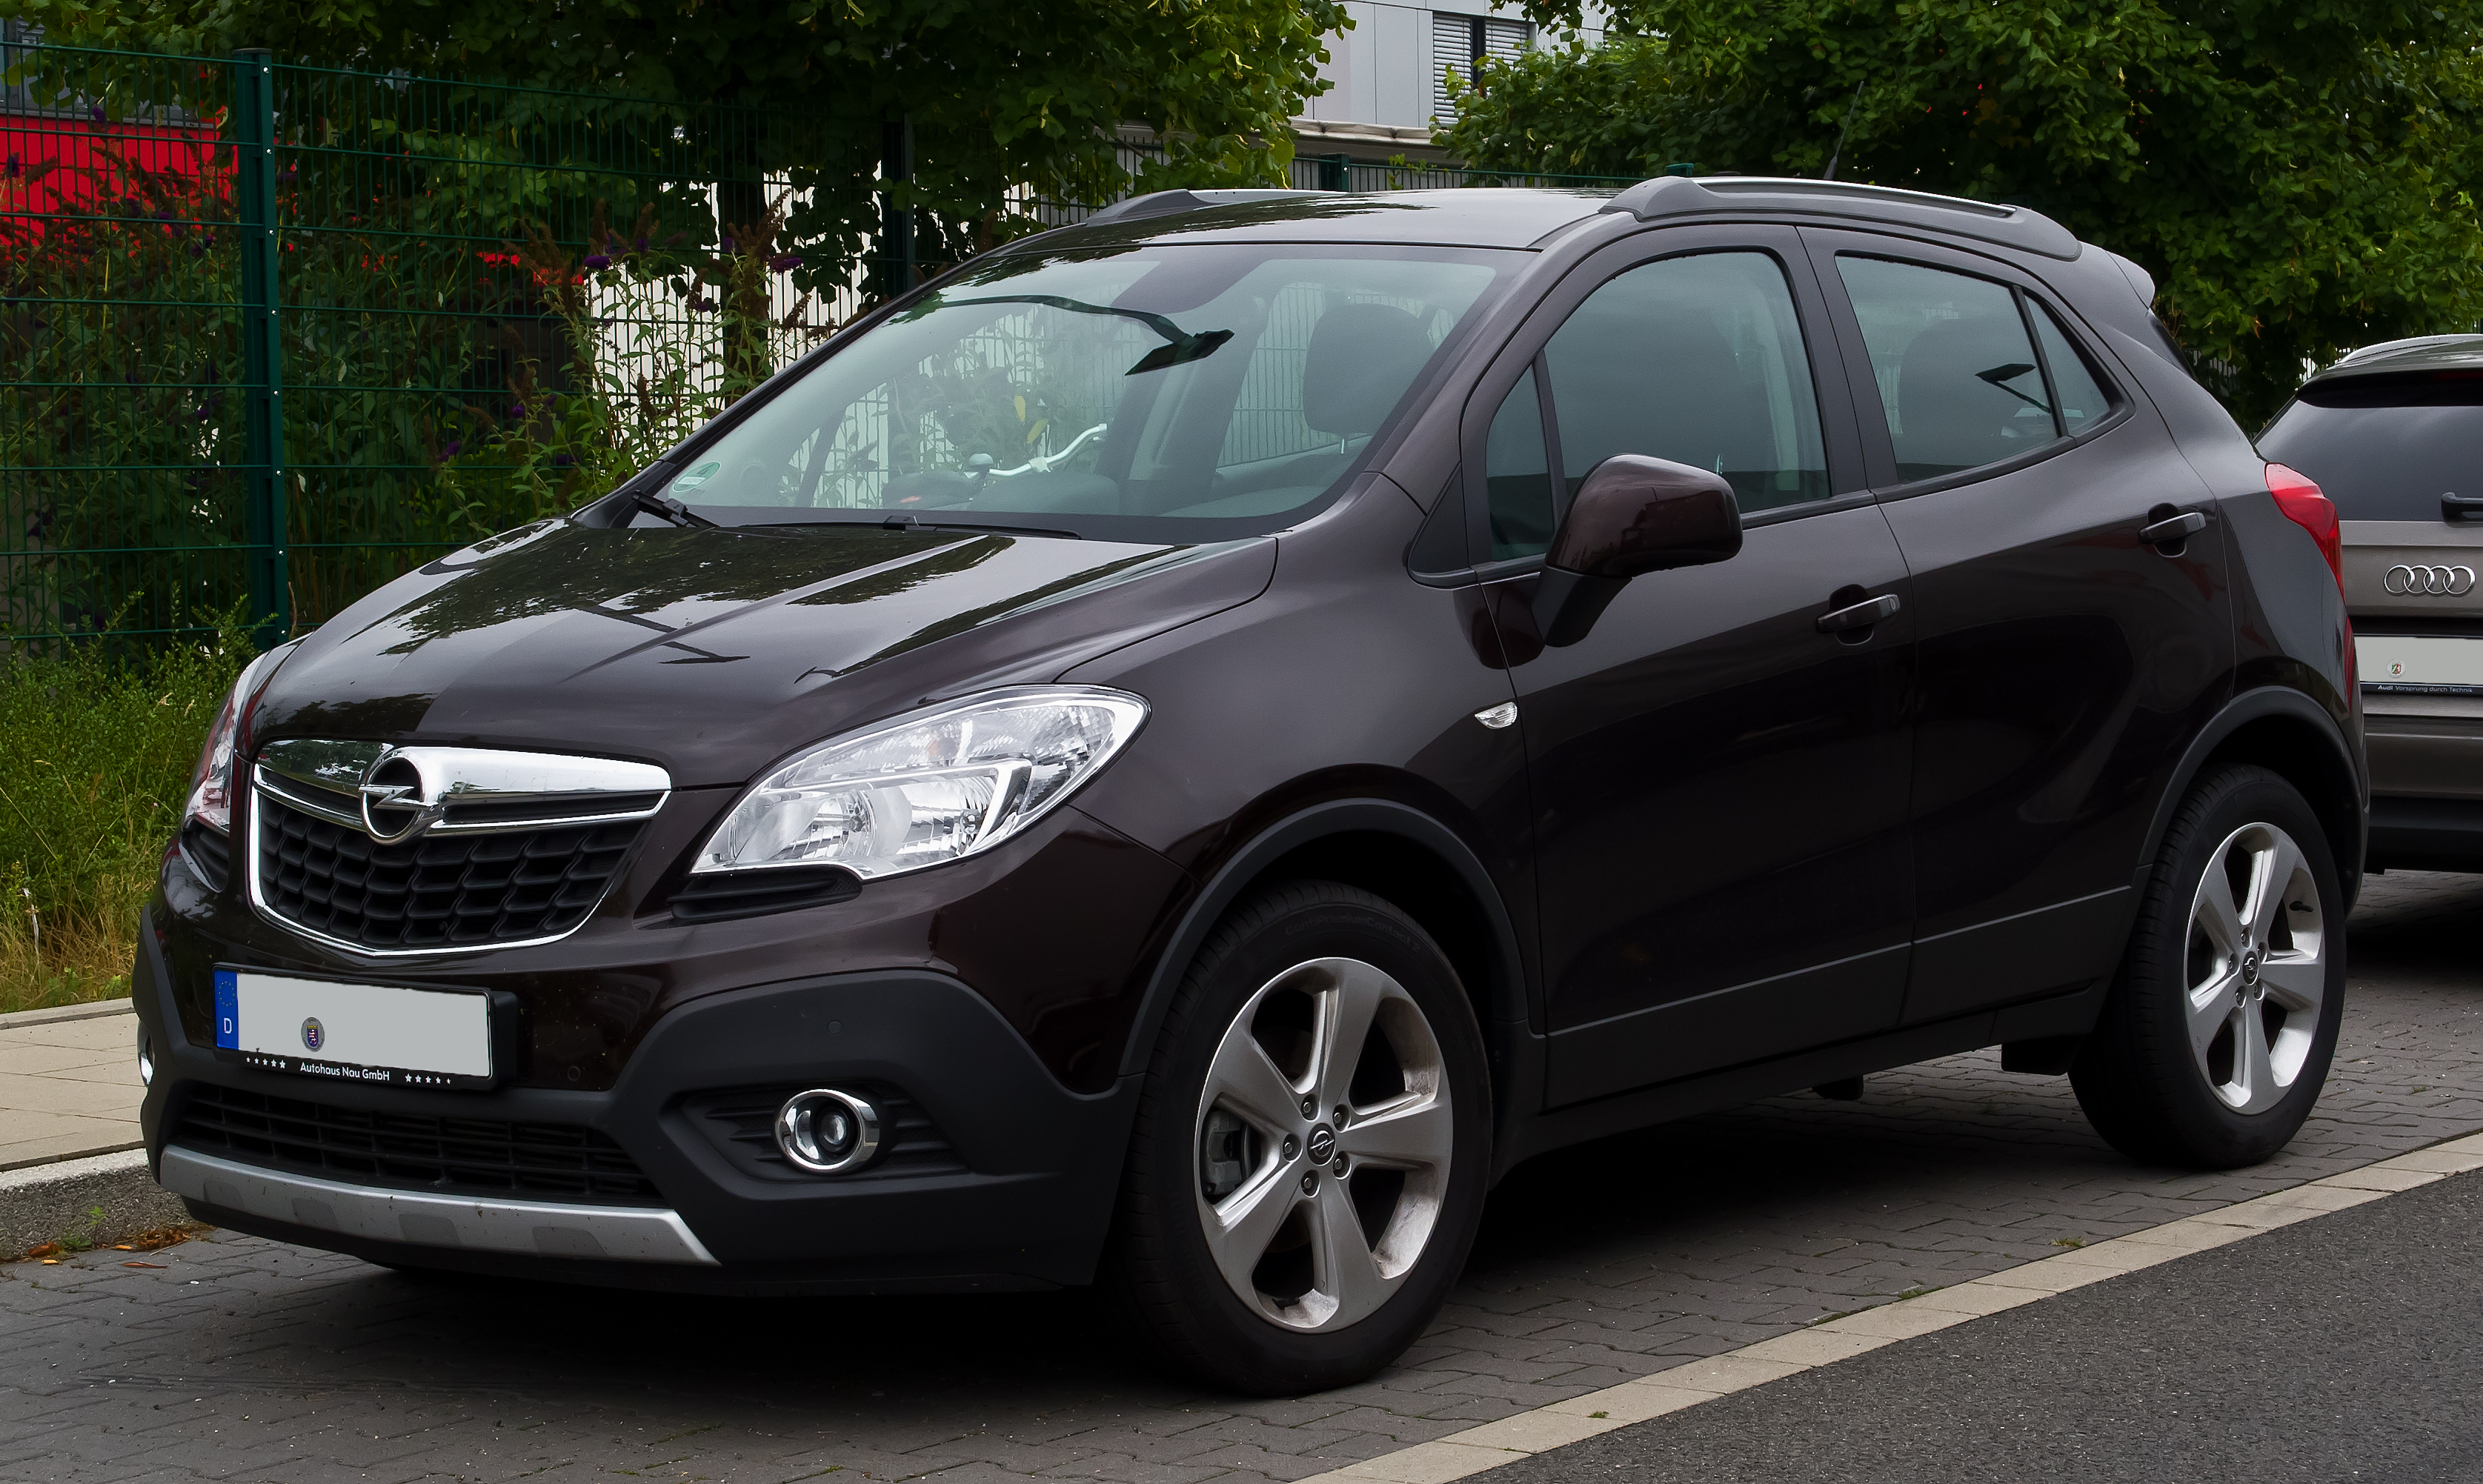 opel mokka 1 7 2010 technical specifications interior and exterior photo. Black Bedroom Furniture Sets. Home Design Ideas